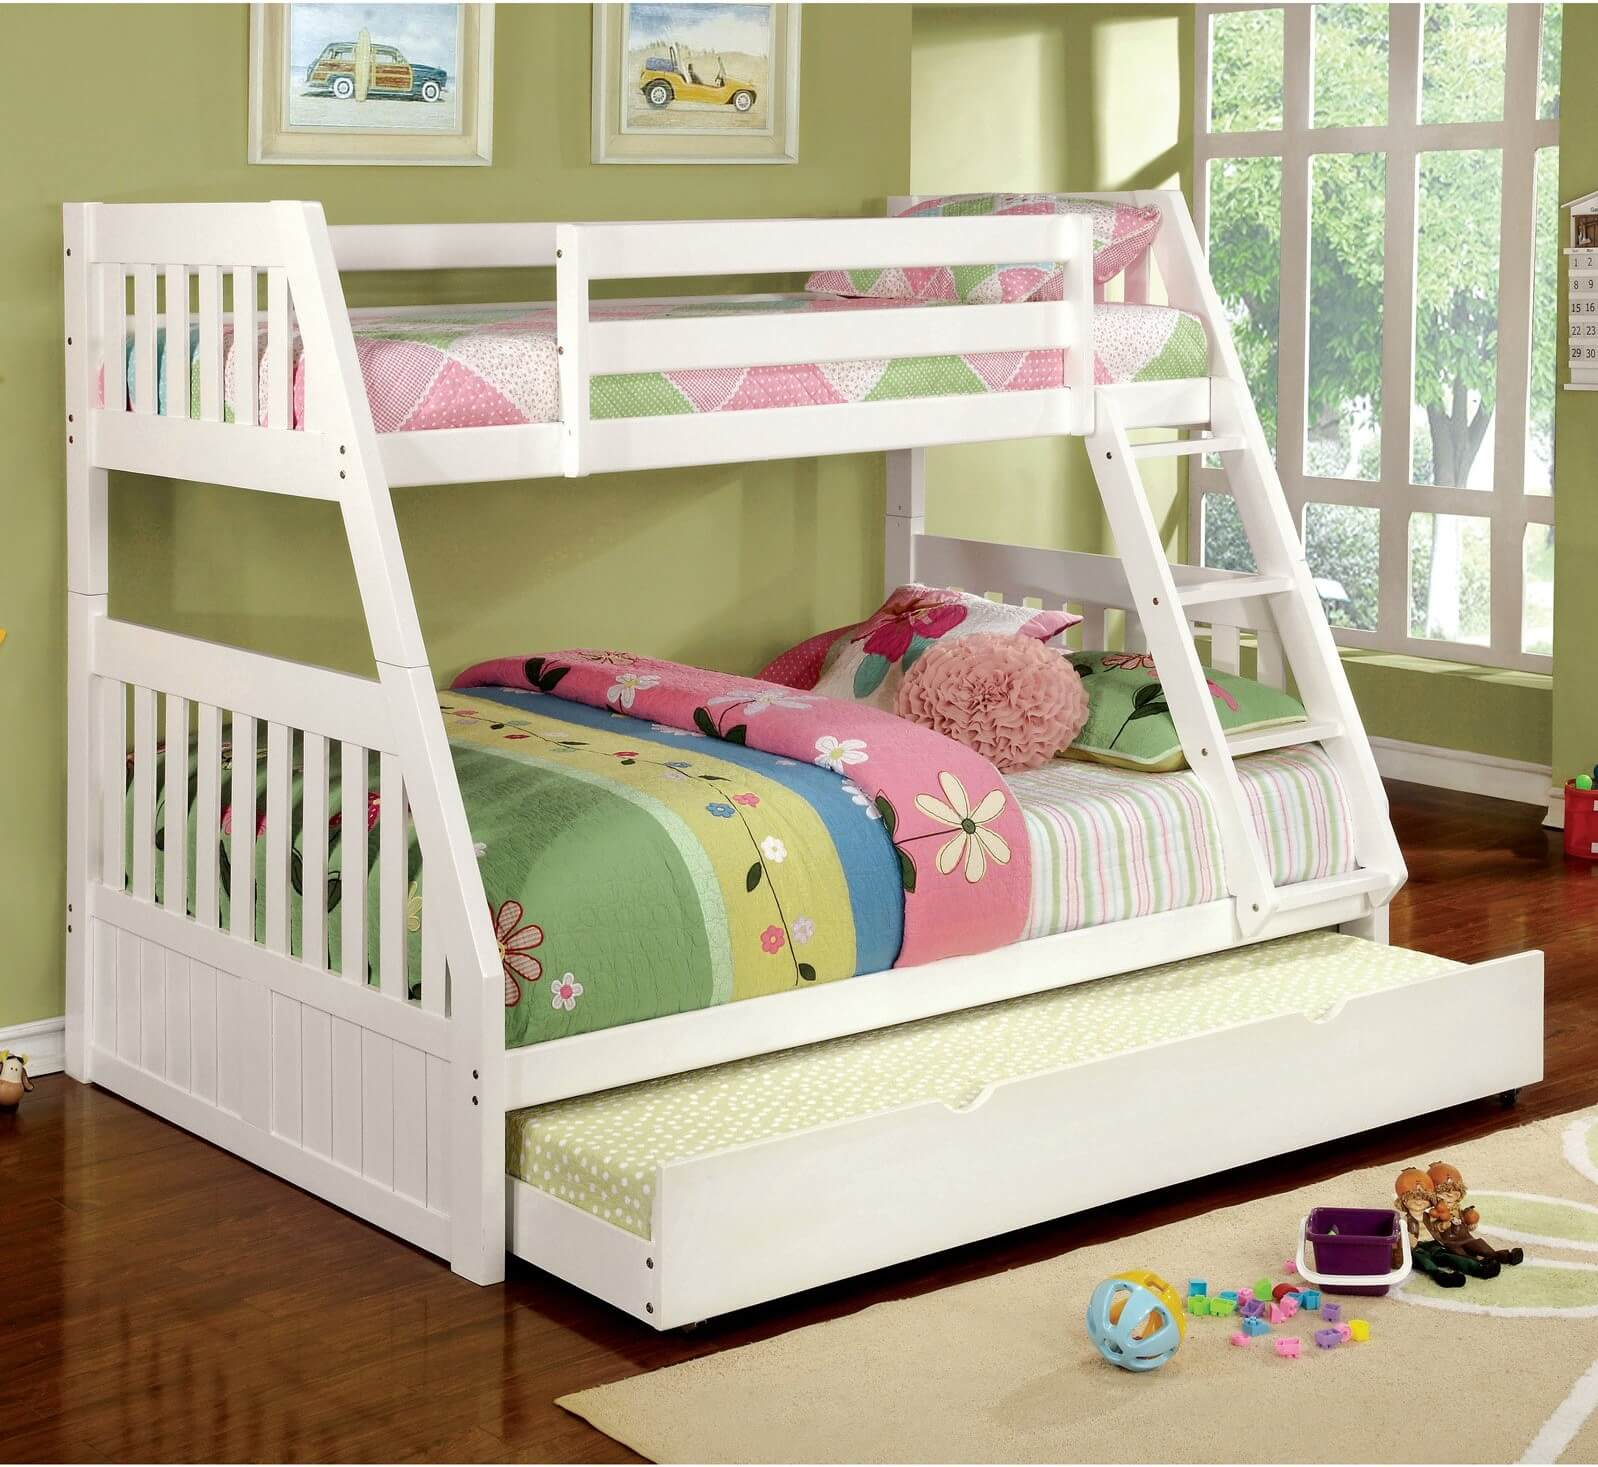 room beds decoration various outstanding with for girls and blue including wall bedroom light bed white paint wood pink boys bunk kid valance girl dec terrific